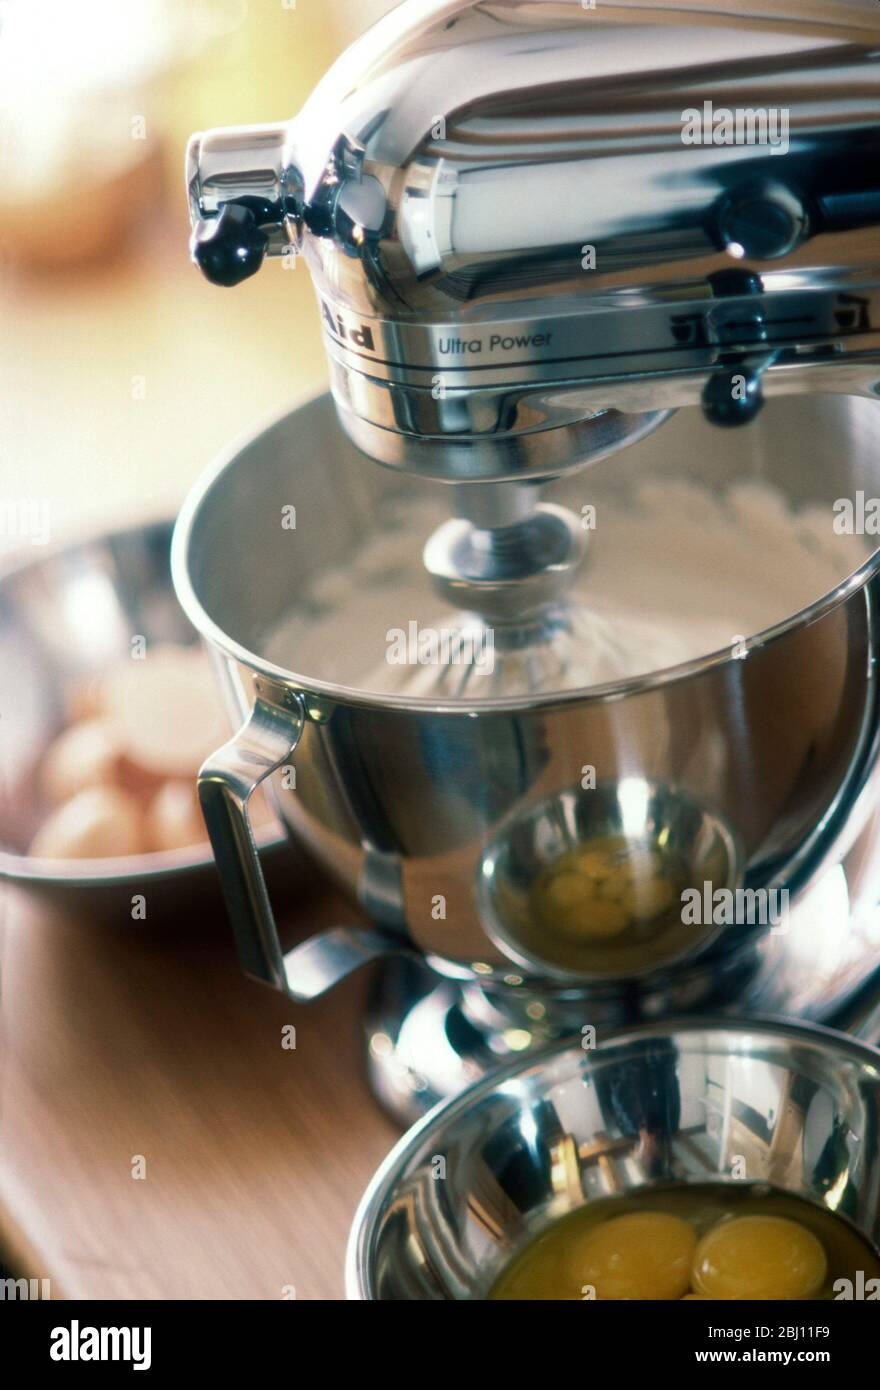 Kitchen Aid Mixer Being Used To Make A Cake Stock Photo Alamy